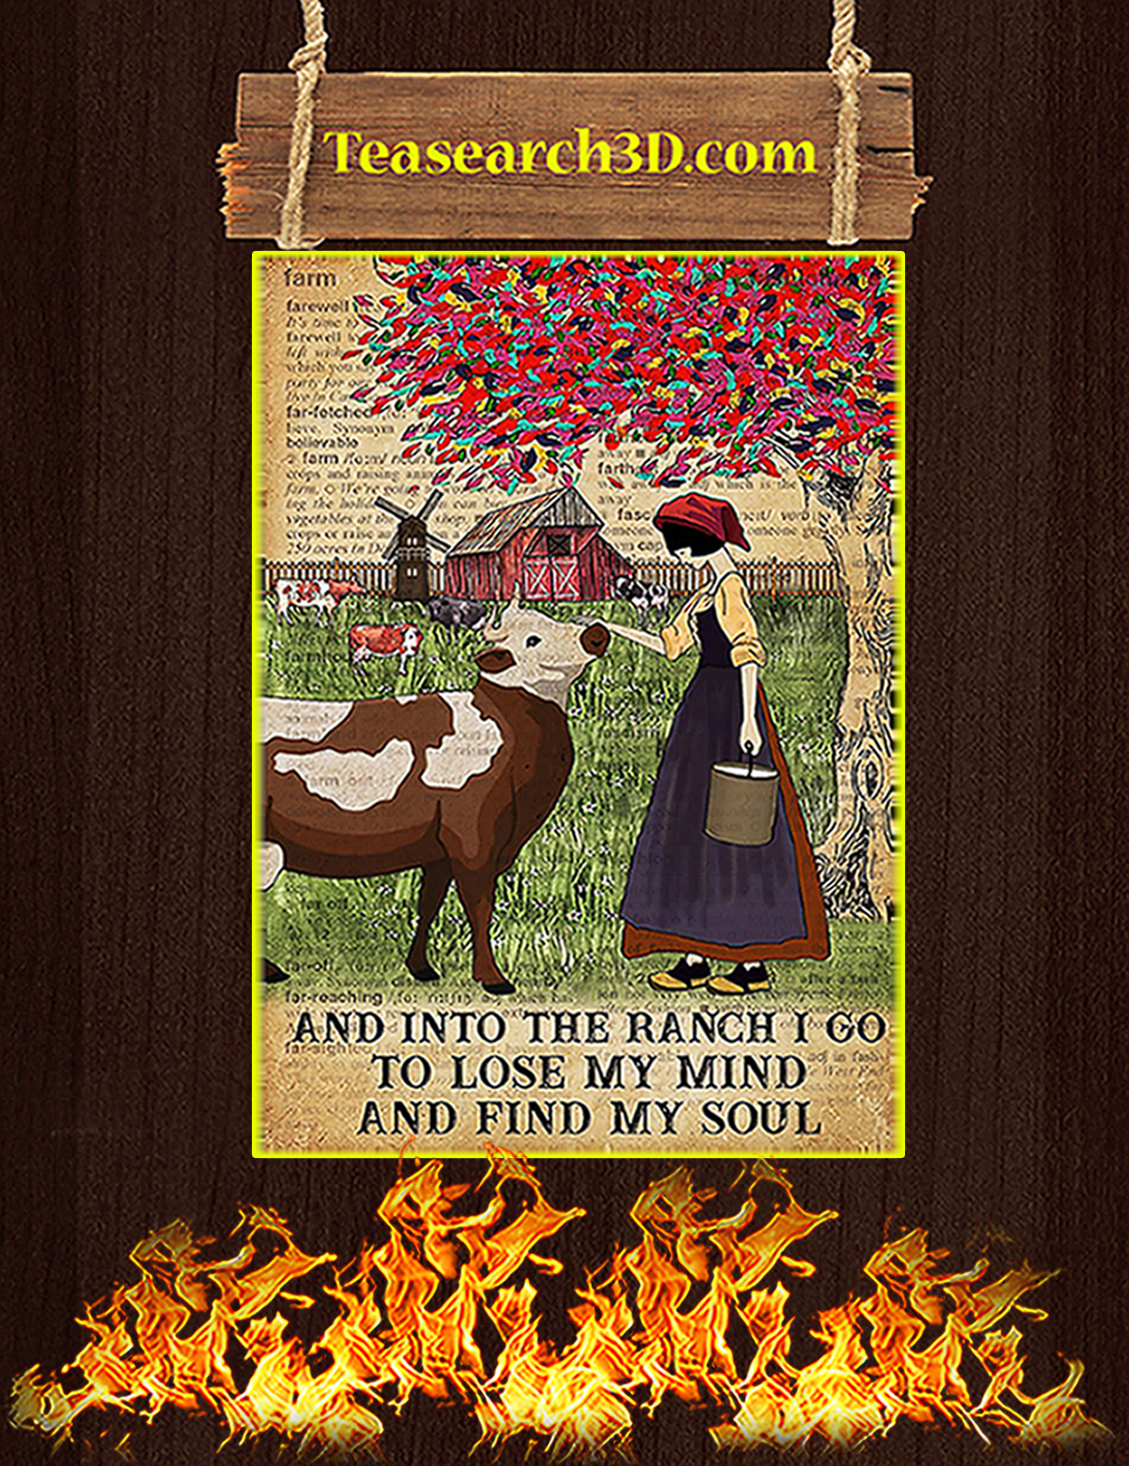 Dictionary cattle farm girl And into the ranch I go to lose my mind and find my soul poster A3